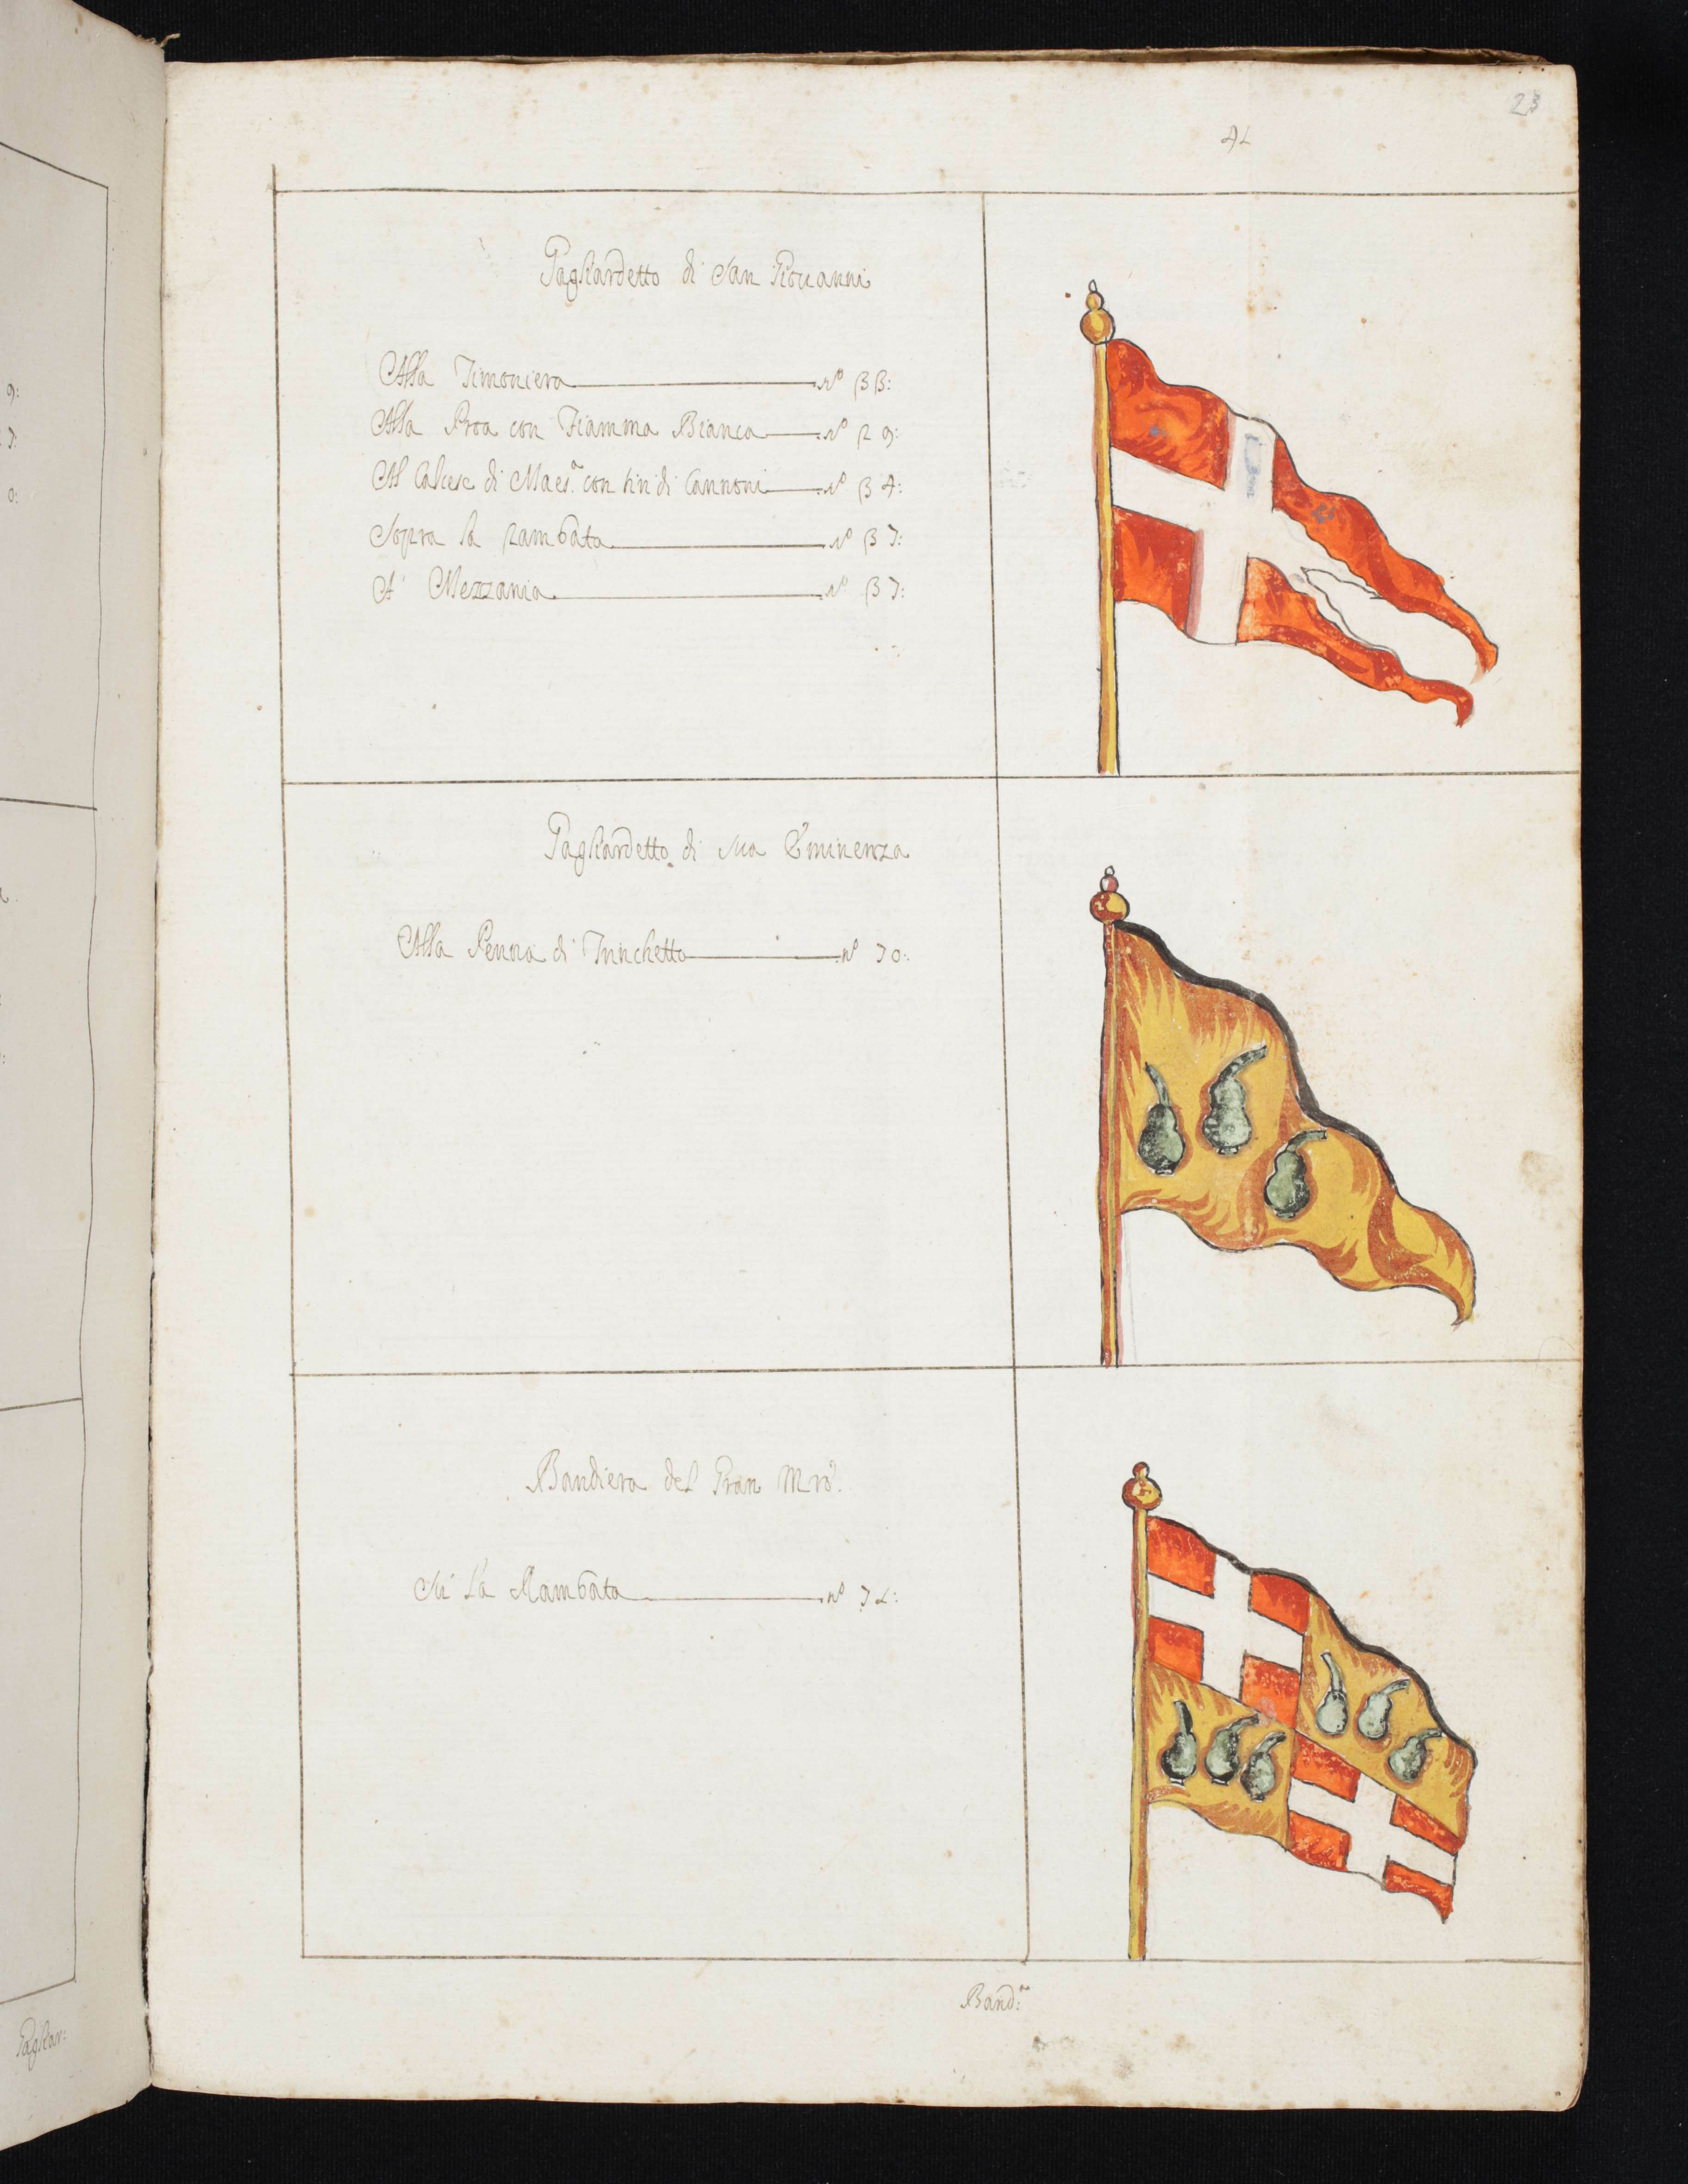 Flag signal book and naval regulations from Catholic University of America. Rare Books and Special Collections (<a href='https://w3id.org/vhmml/readingRoom/view/500329'>CUAMAL 00001</a>)